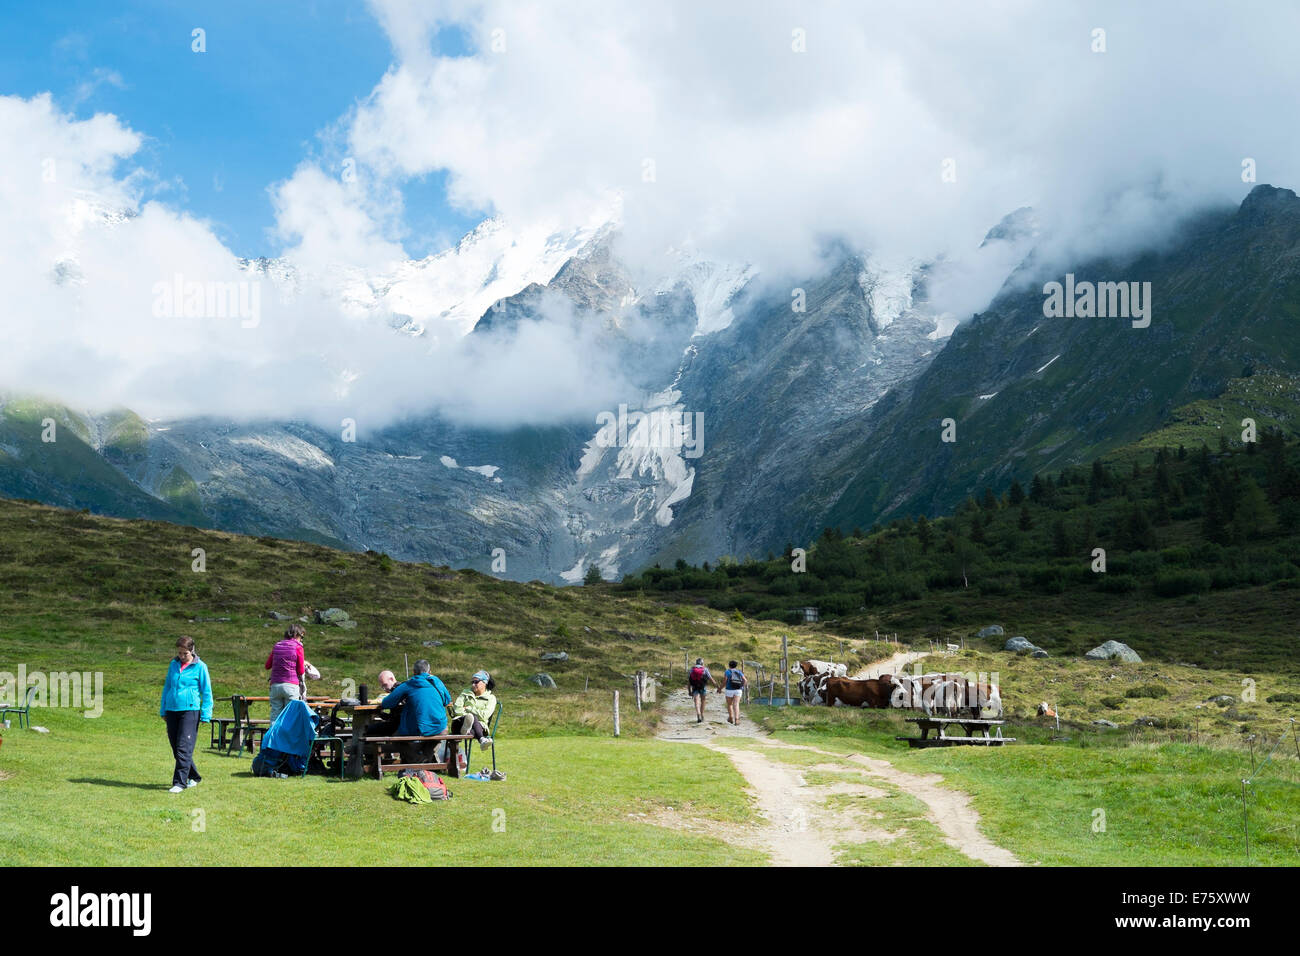 ST-GERVAIS-LES-BAINS, FRANCE - AUGUST 24: Hikers at the Truc Hostel, at bottom of the Domes de Miage mountain. This - Stock Image